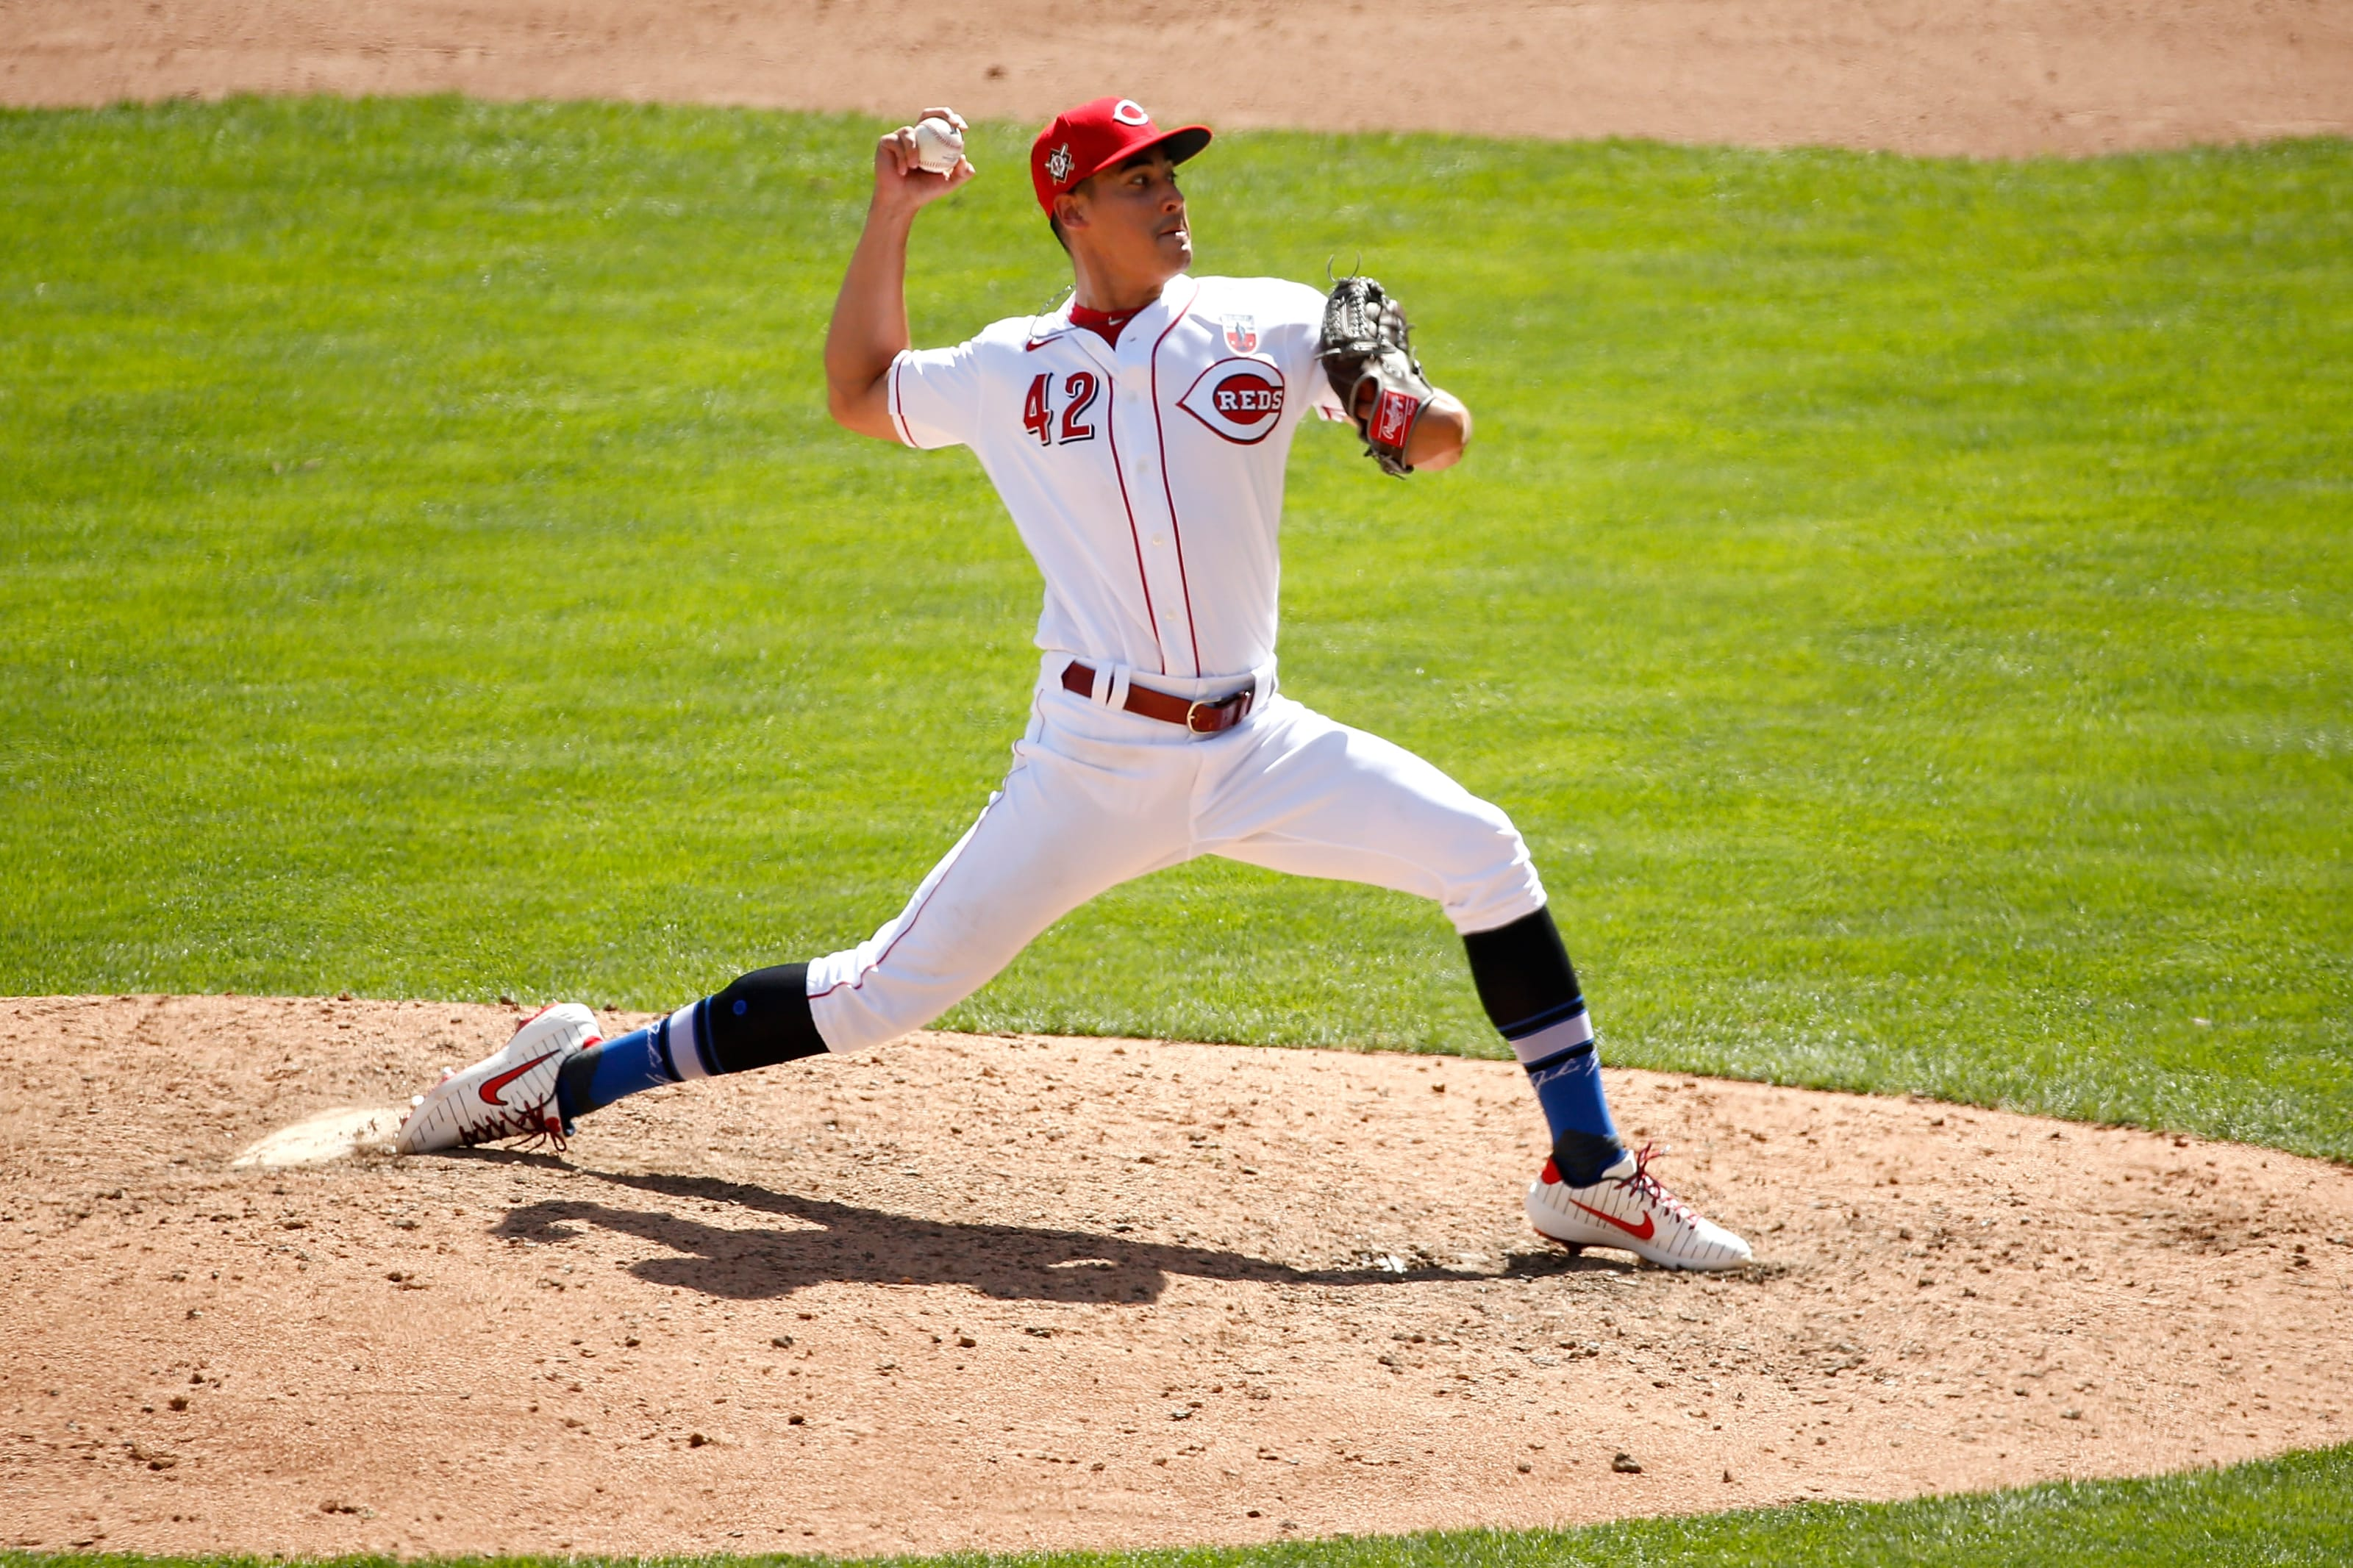 Robert Stephenson #42 of the Cincinnati Reds pitches during the game against the Chicago Cubs.